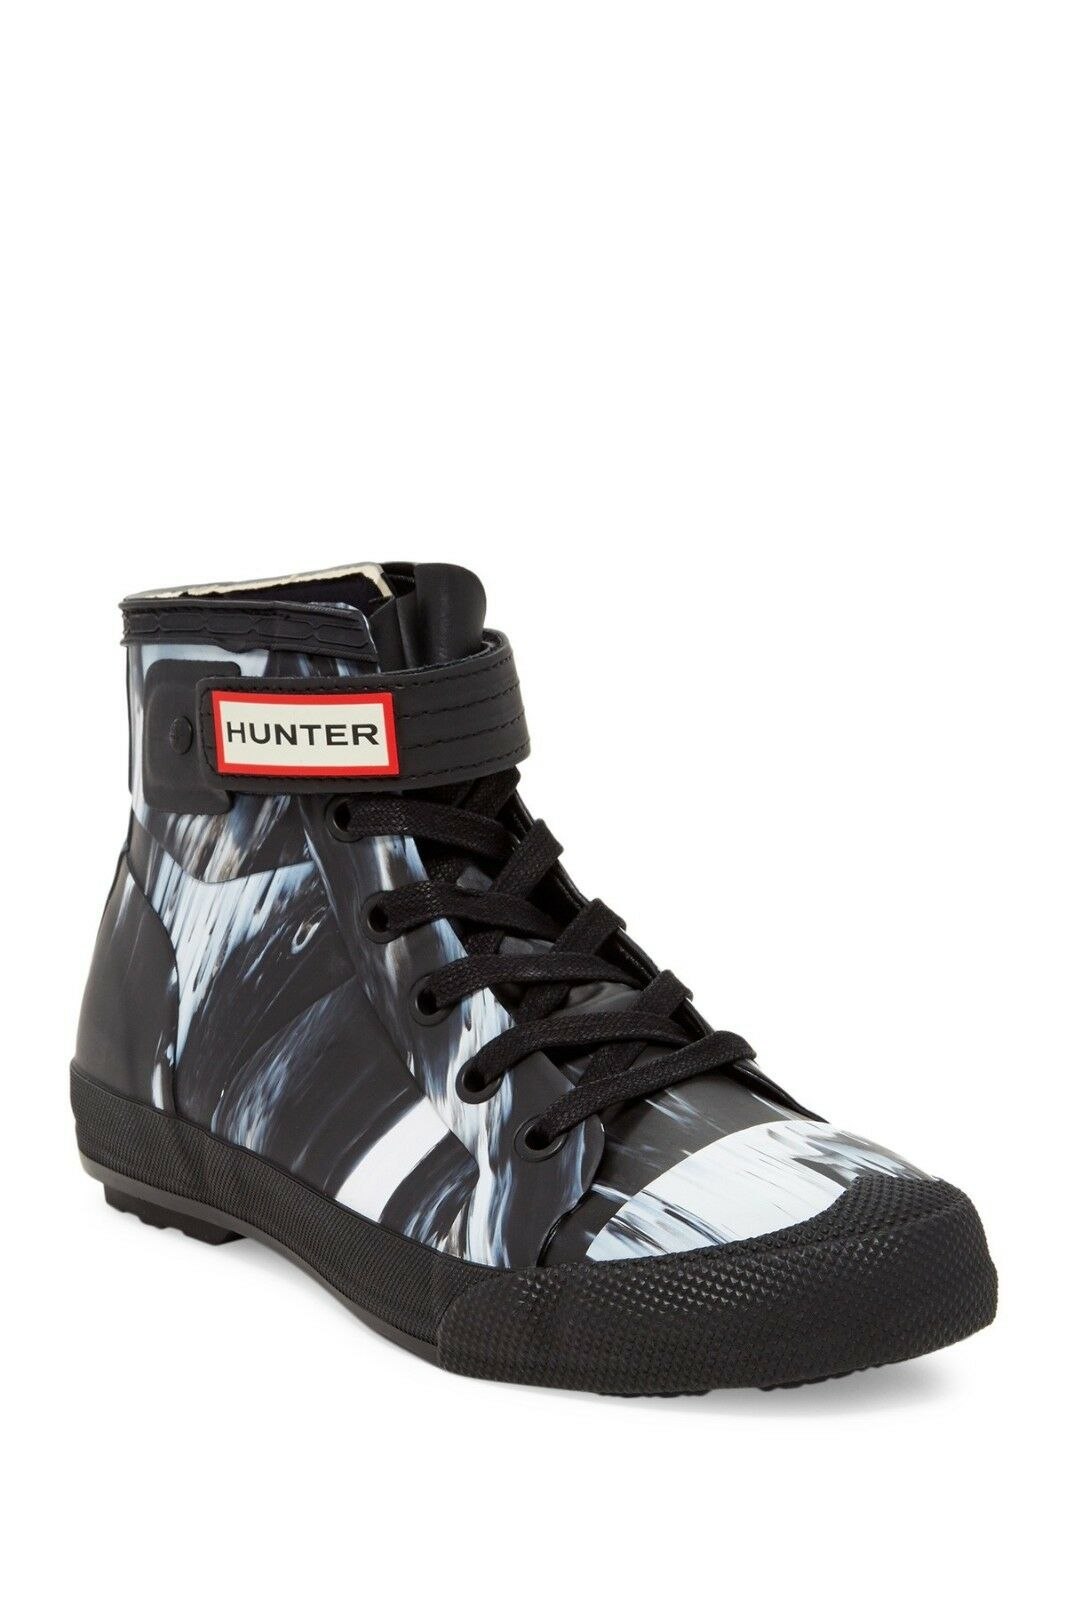 HUNTER Stiefel Original High Top Sneakers Rubber Boot Rain Nightfall Waterproof 6